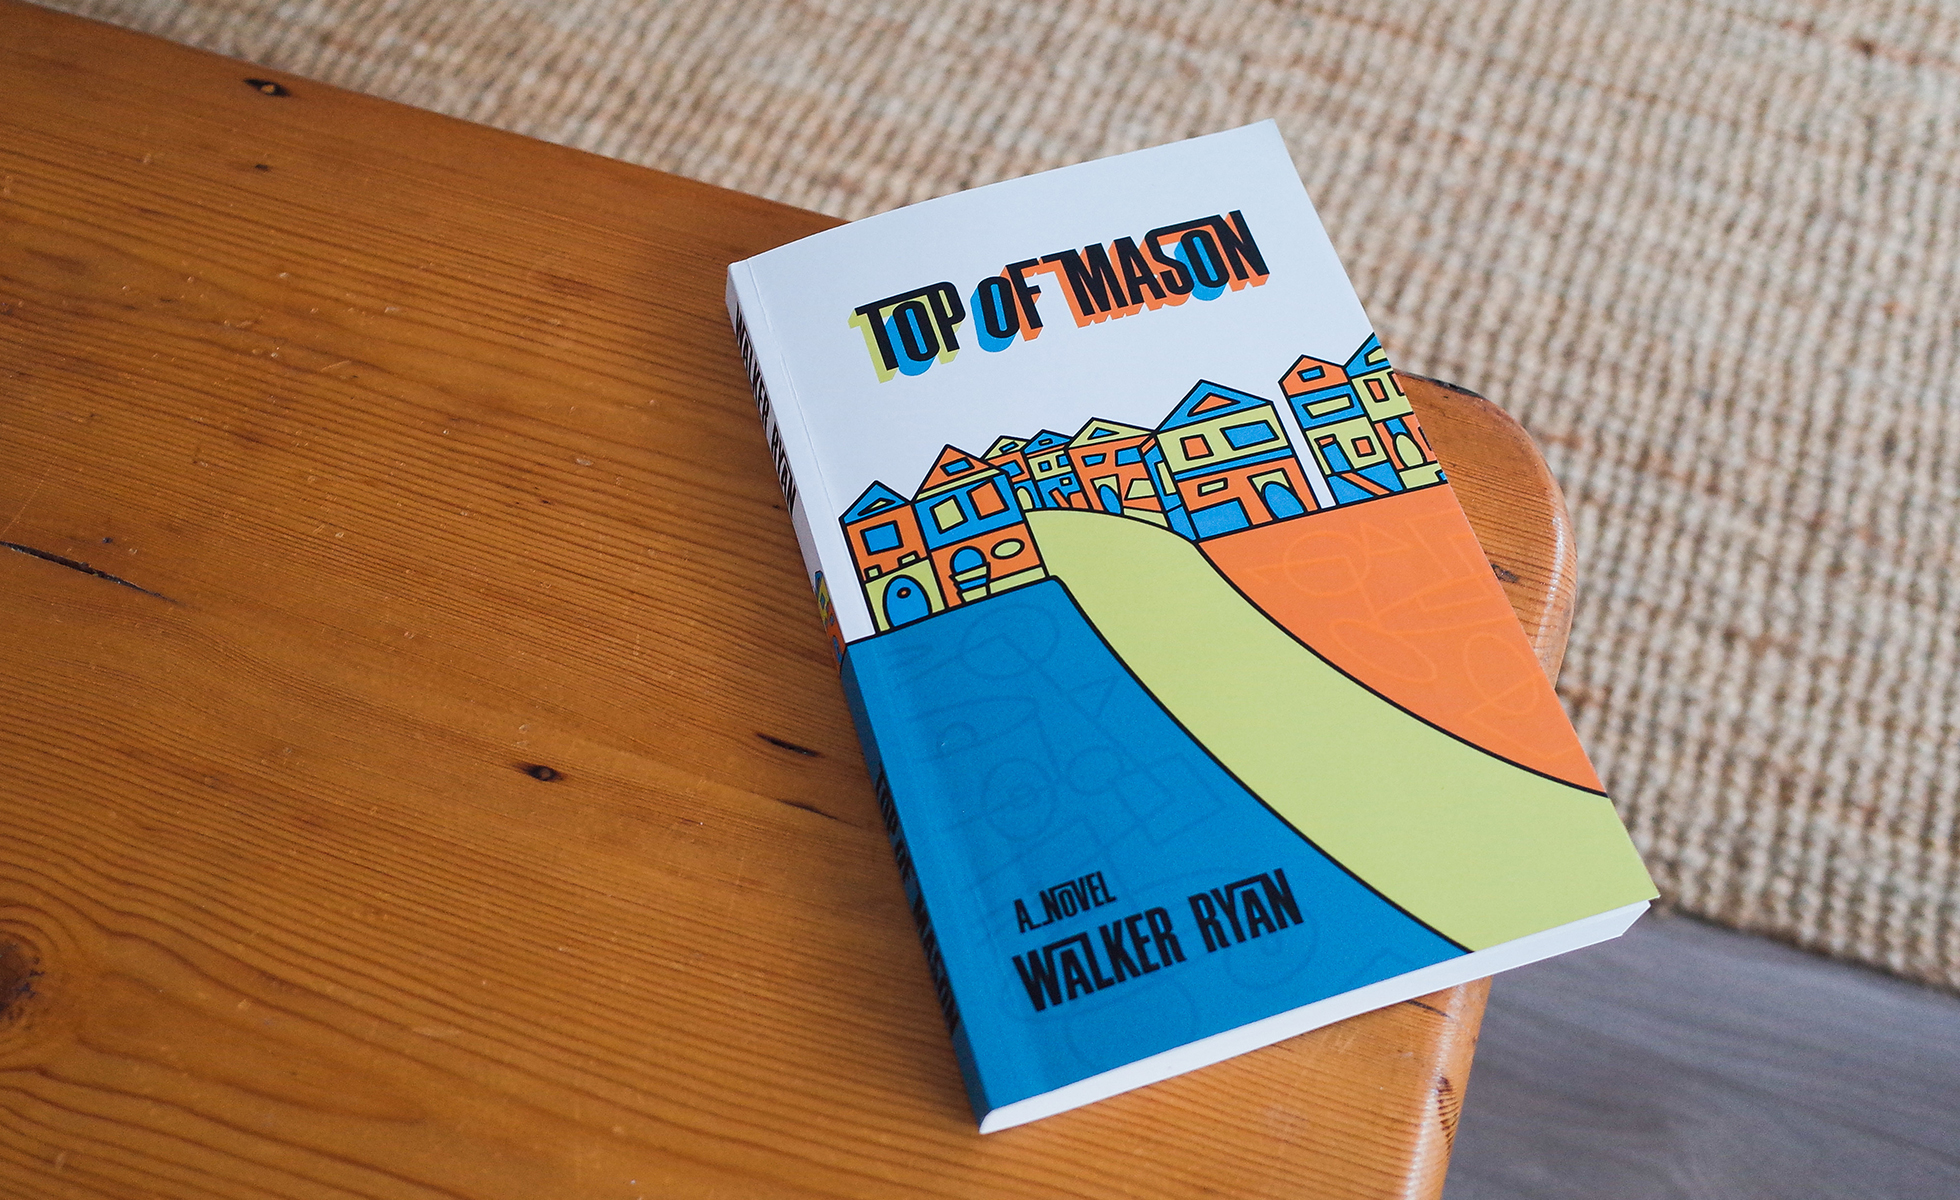 Walker Ryan Talks His First Novel: Top of Mason